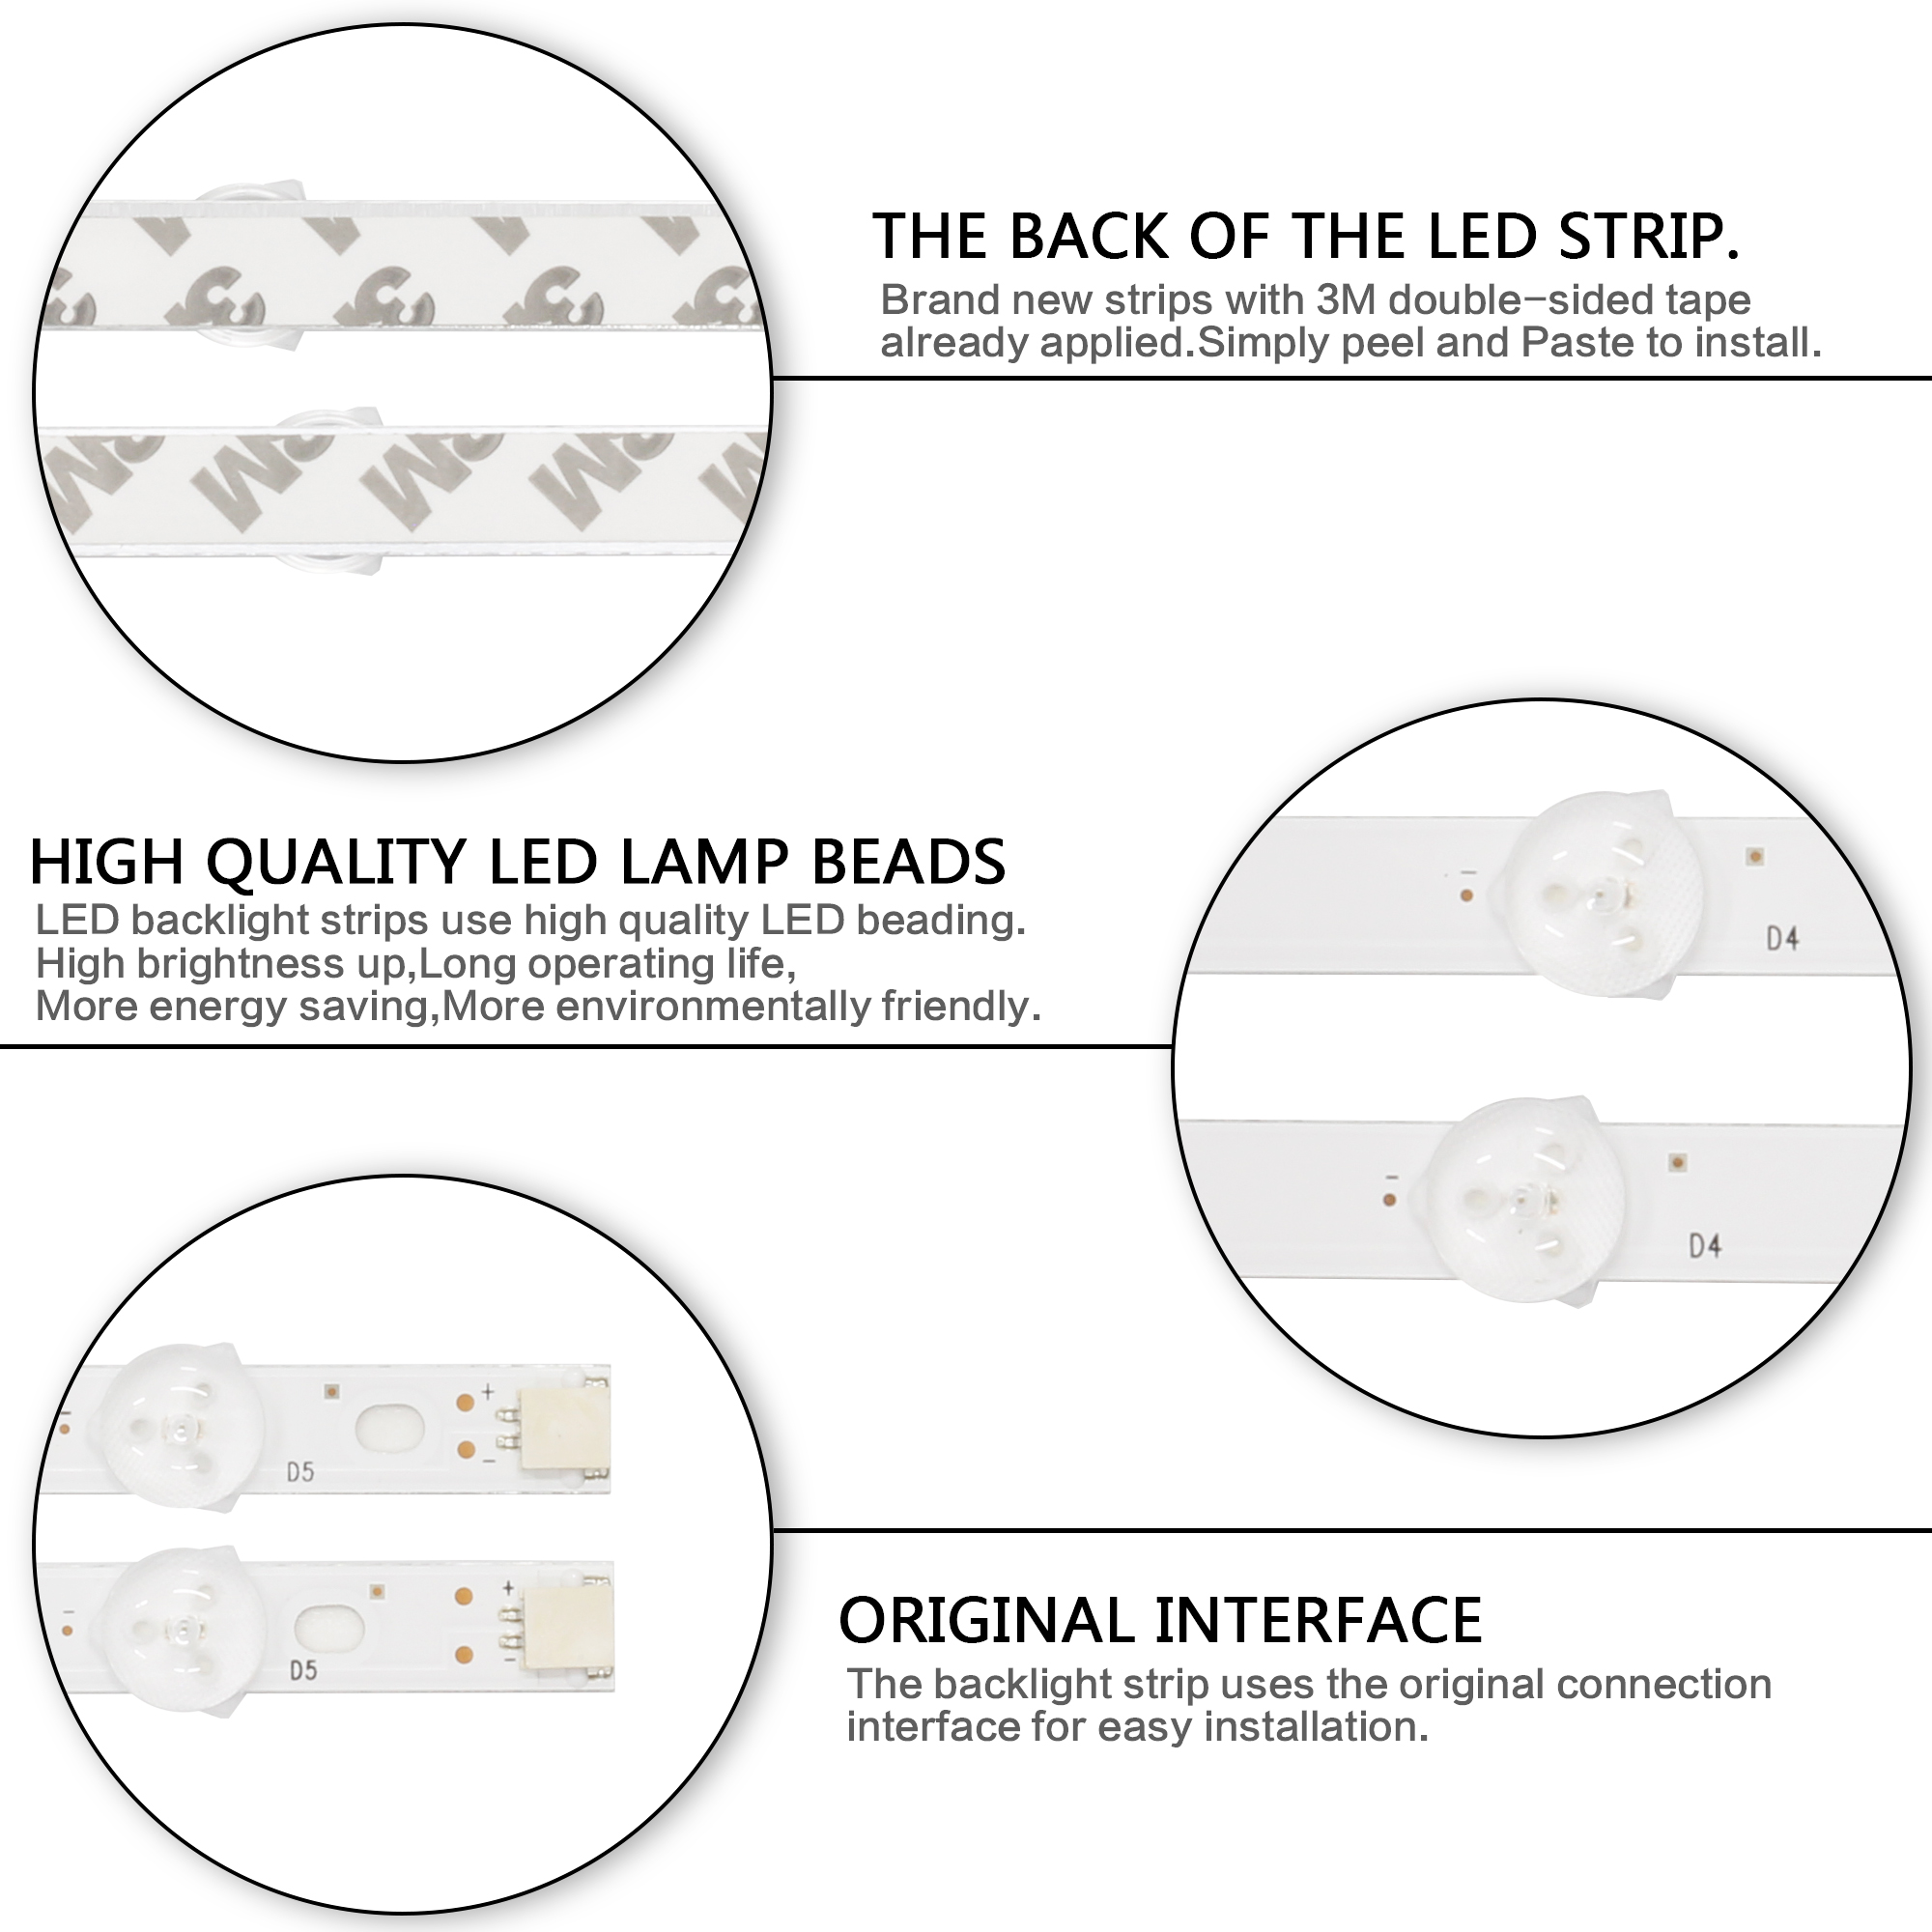 Image 5 - LED strip perfect Replacement for LG 42LN5700 42LN519C 42LN5200 42LN6150 42LN5758 42LN541V 42LN5450 6637L 0025A LC420DUE-in Industrial Computer & Accessories from Computer & Office